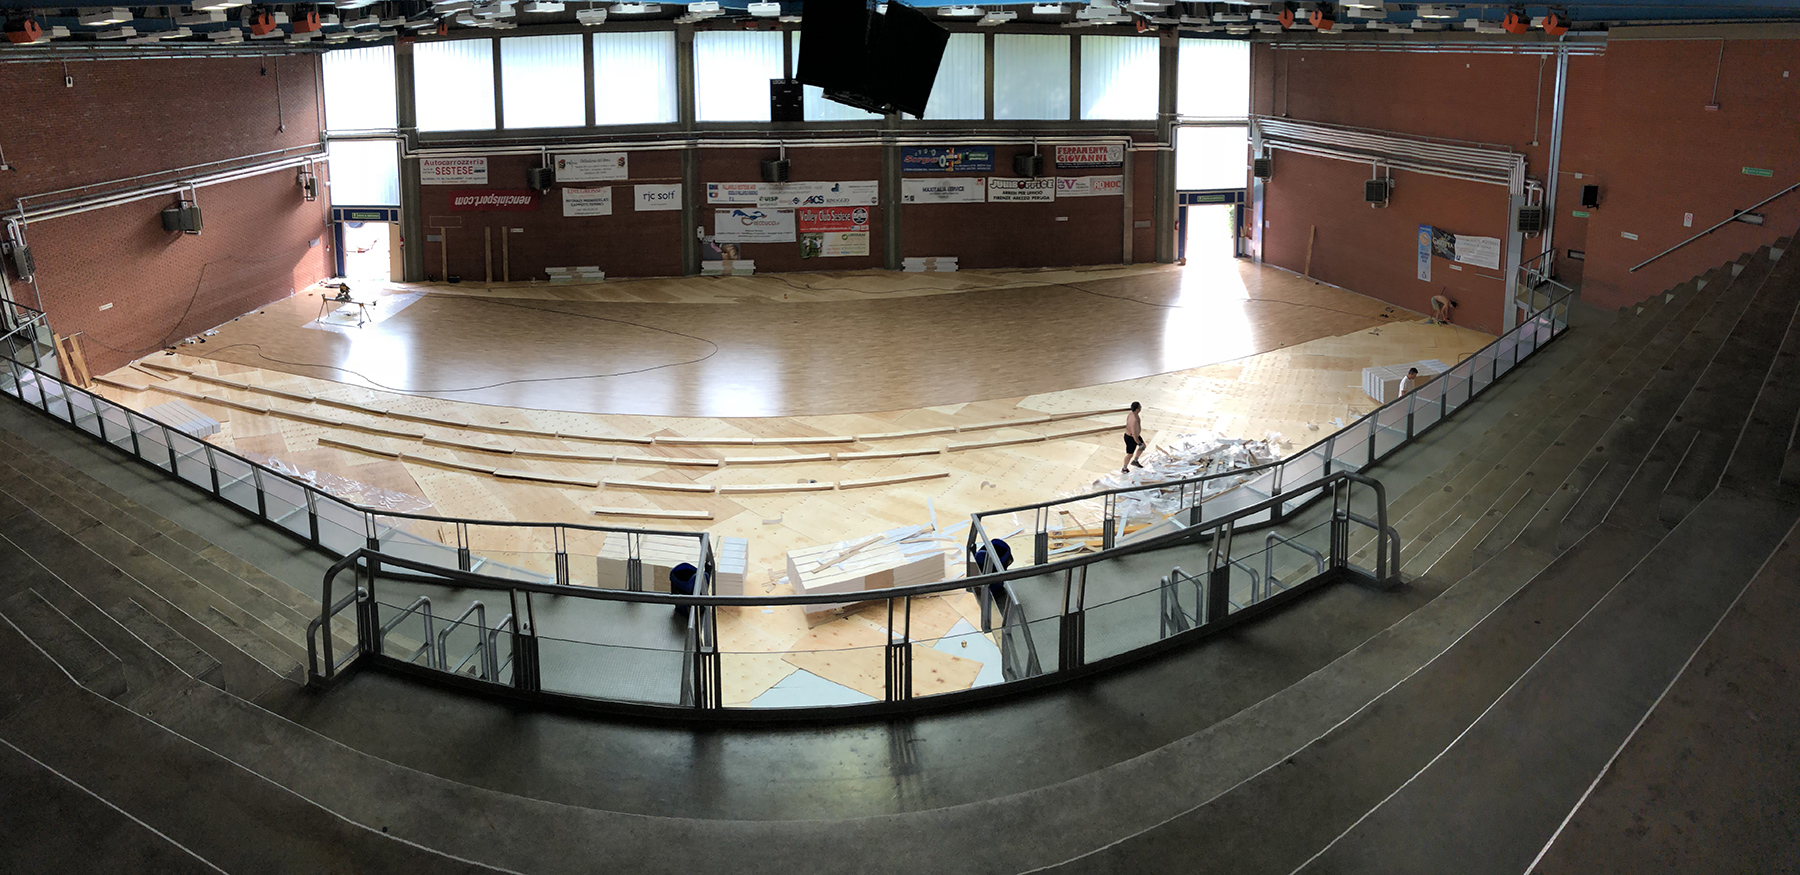 The laying of the sports parquet in oak